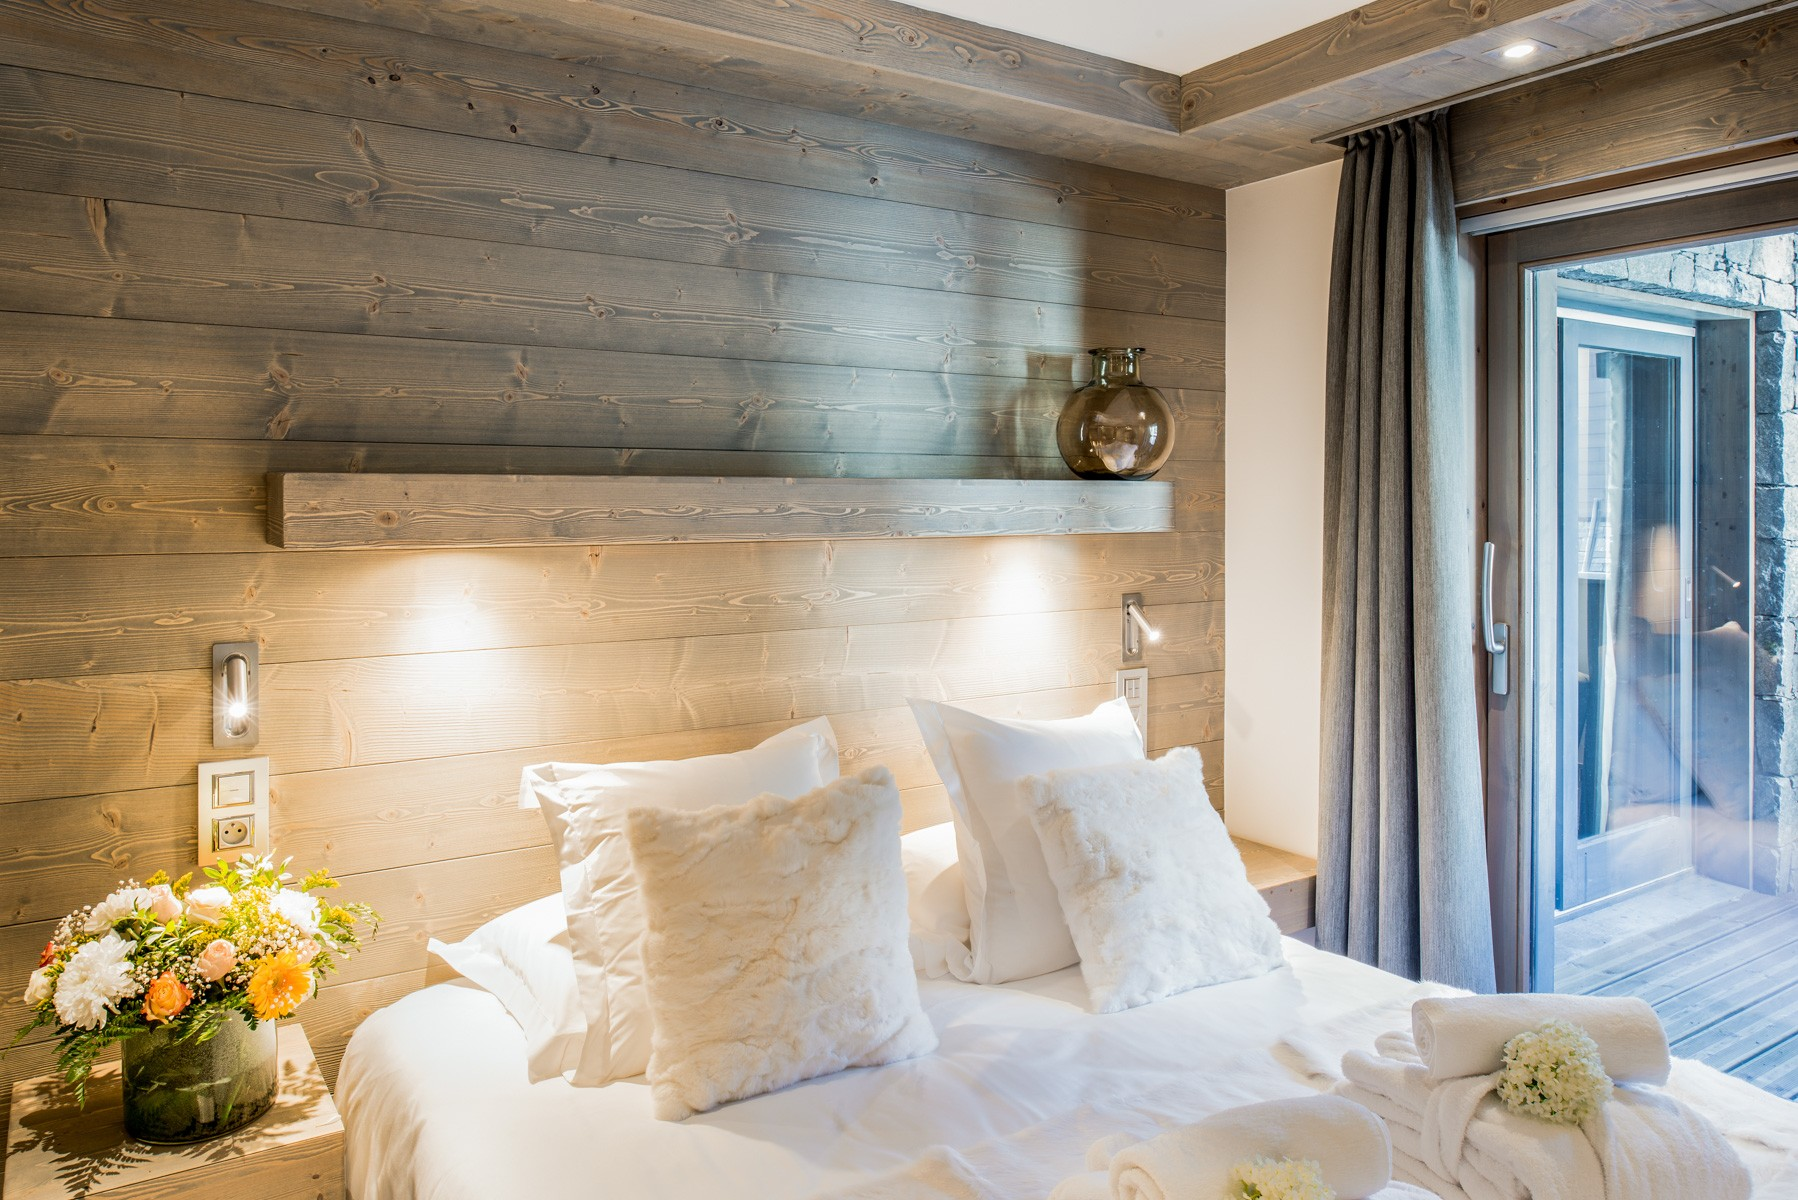 Courchevel 1650 Location Appartement Luxe Amurile Chambre